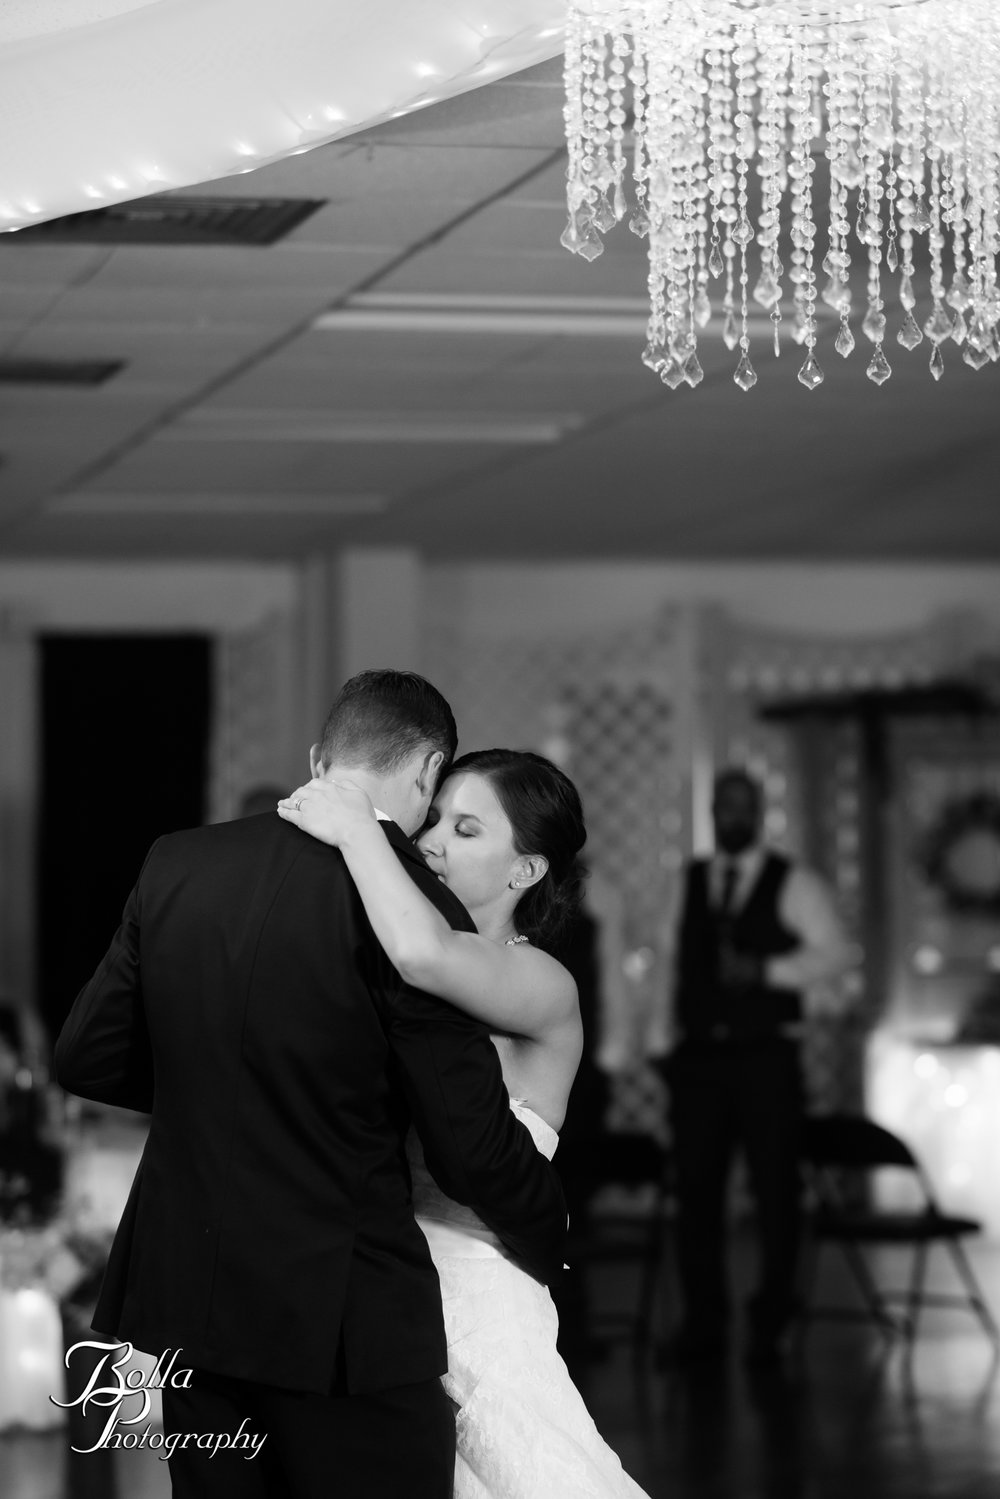 Bolla_photography_edwardsville_wedding_photographer_st_louis_weddings_Jessica_Barbachem_Dillon_Kaesberg_Waterloo_Red_Bud-0504.jpg